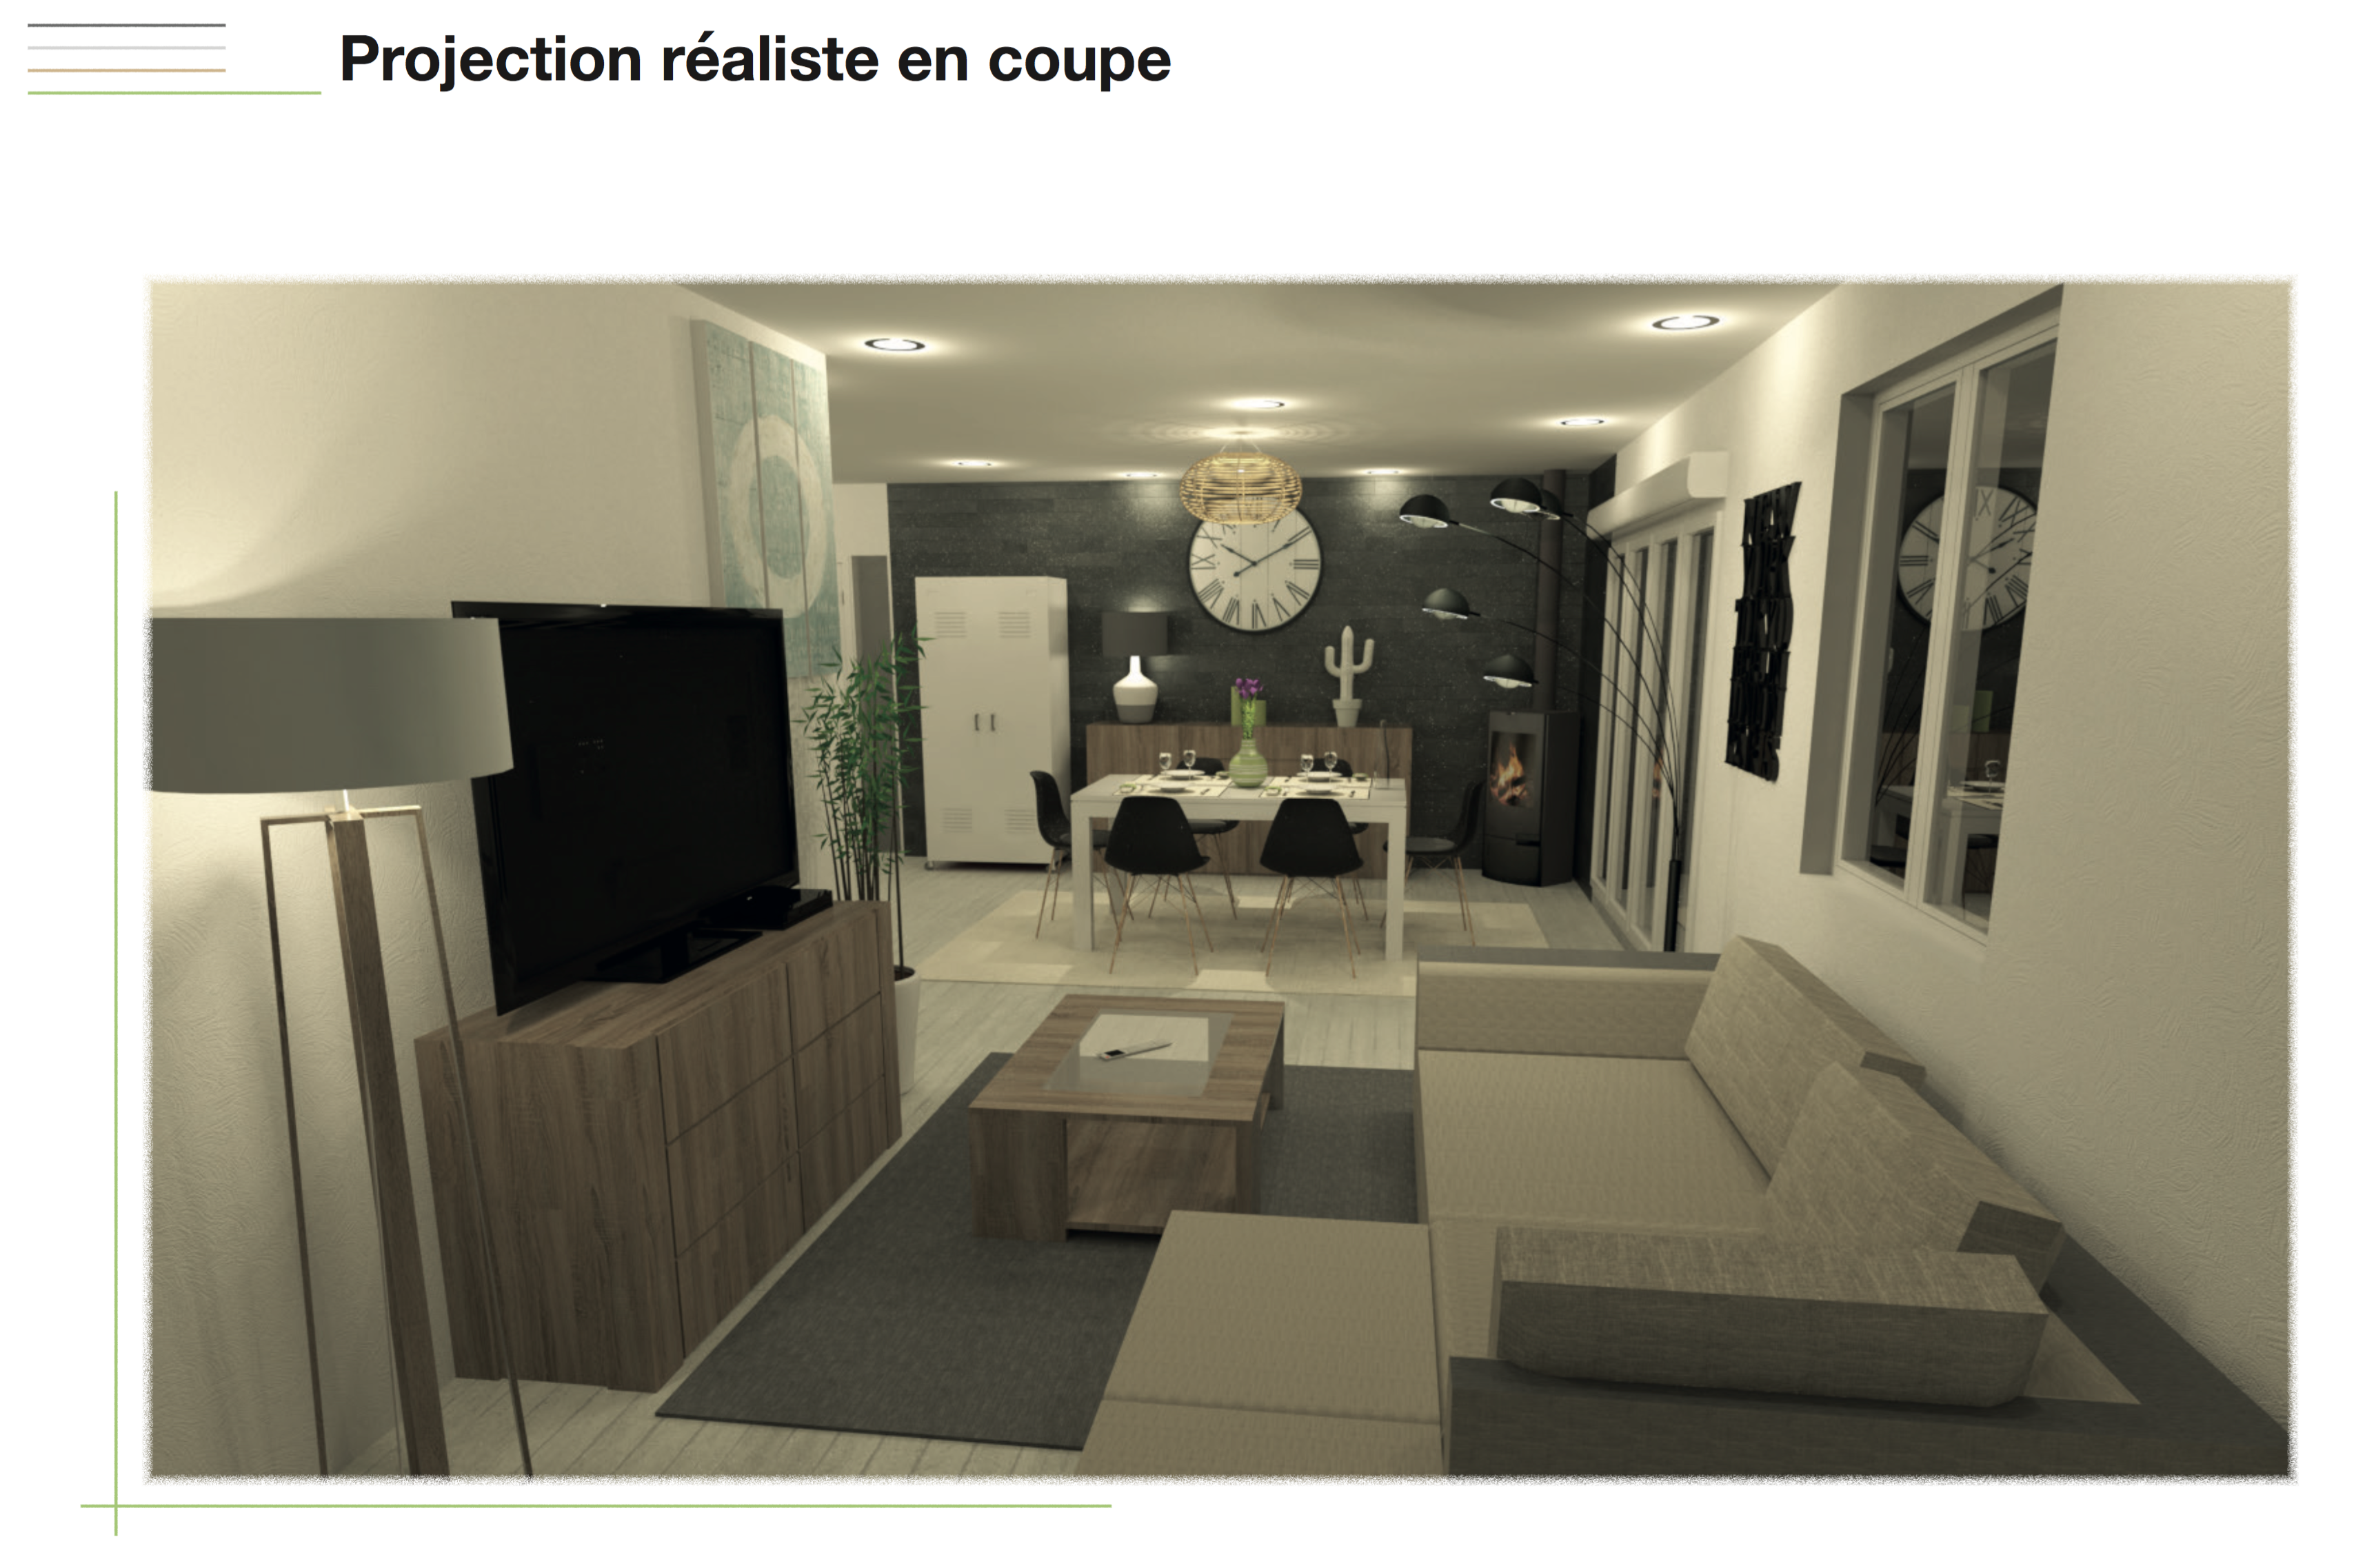 Planche de projection